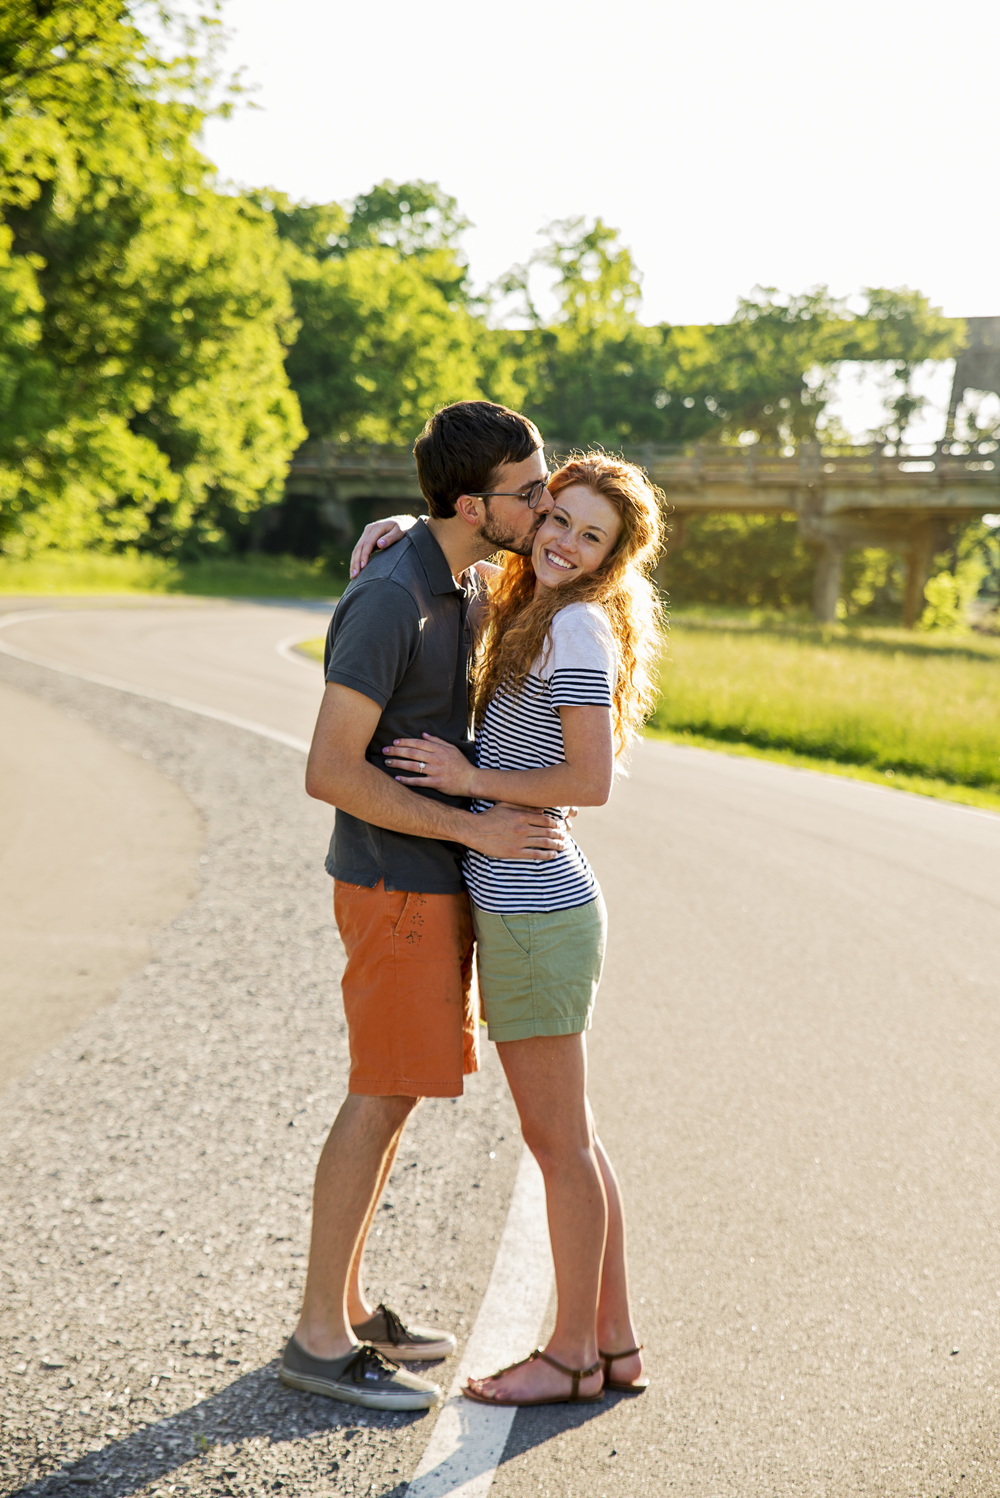 altavista_ginger_redhead_field_lake_engagement_session_small_town_lynchburg_va033.jpg